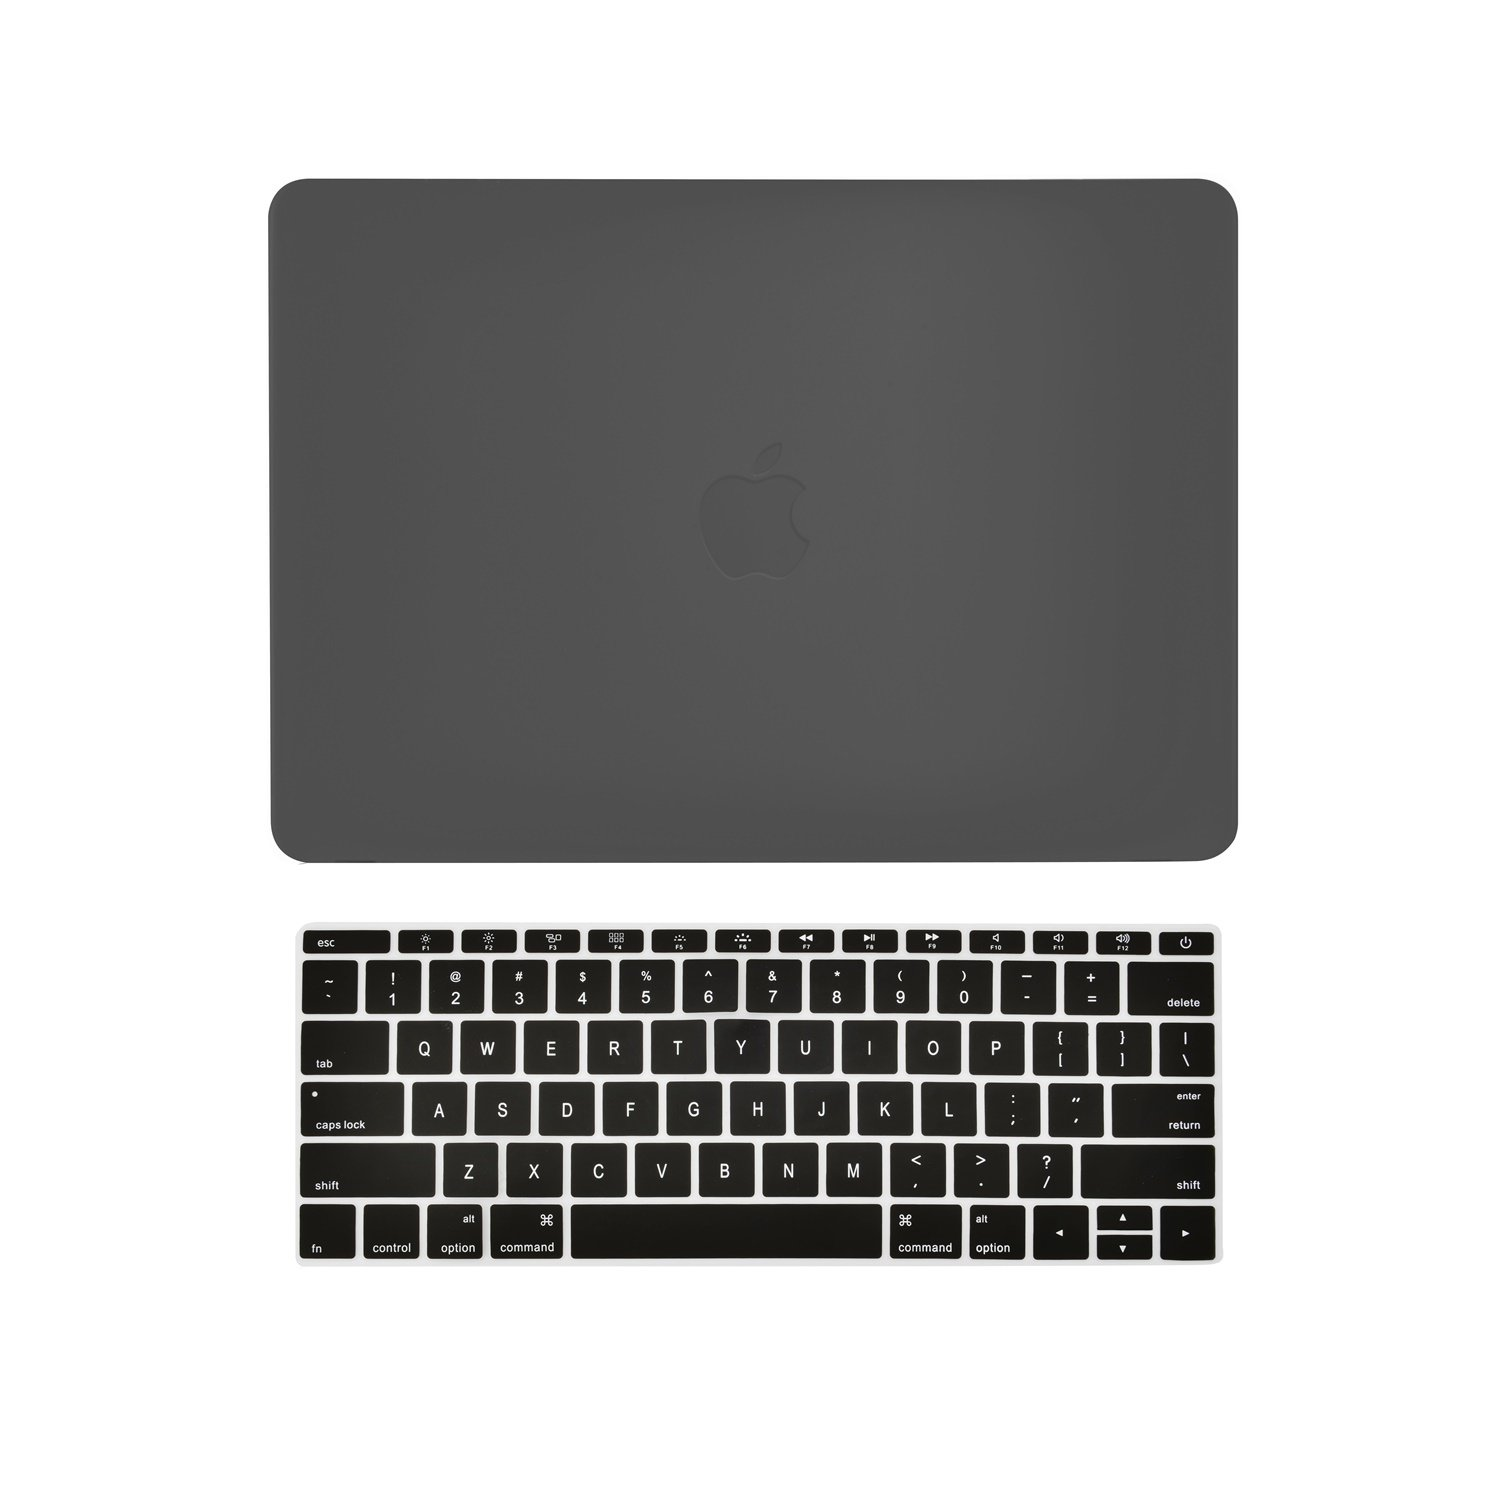 TOP CASE 2 in 1 - Black Rubberized Hard Shell Case Cover and Matching Color Keyboard Cover Skin Compatible with MacBook 12'' Retina Display Model A1534 (Release 2015)